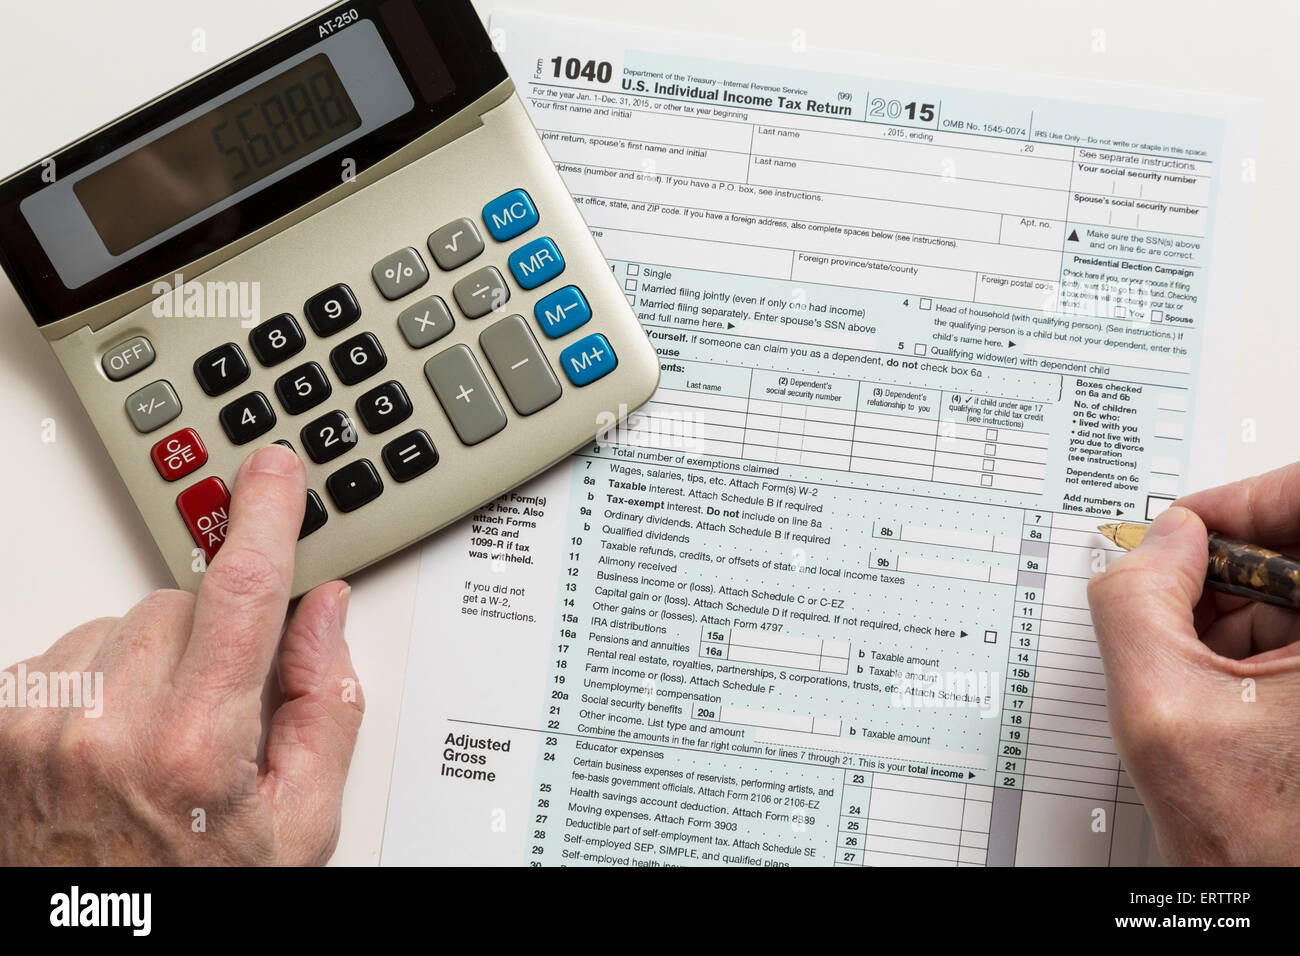 Man filling in USA tax form 1040 for year 2015 with calculator - Stock Image